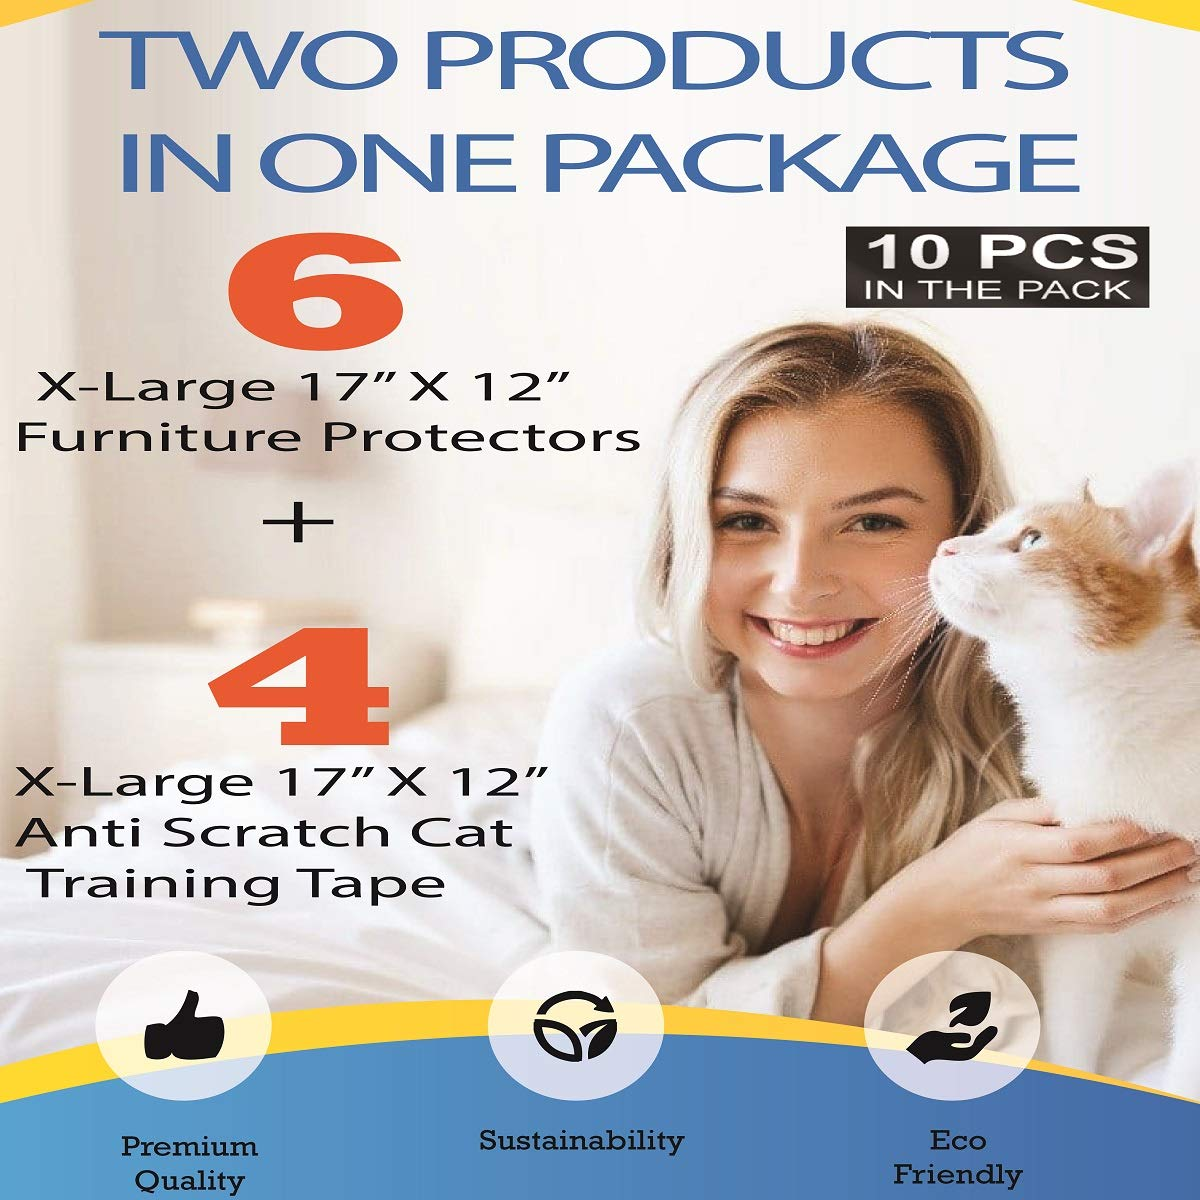 Cat Scratch Deterrent Pack 6 XL Furniture Protectors from Cats + 4 XL Double Sided Training Tape - Pet Corrector - Corner Protector Cat Repellent Anti Scratching Accessories